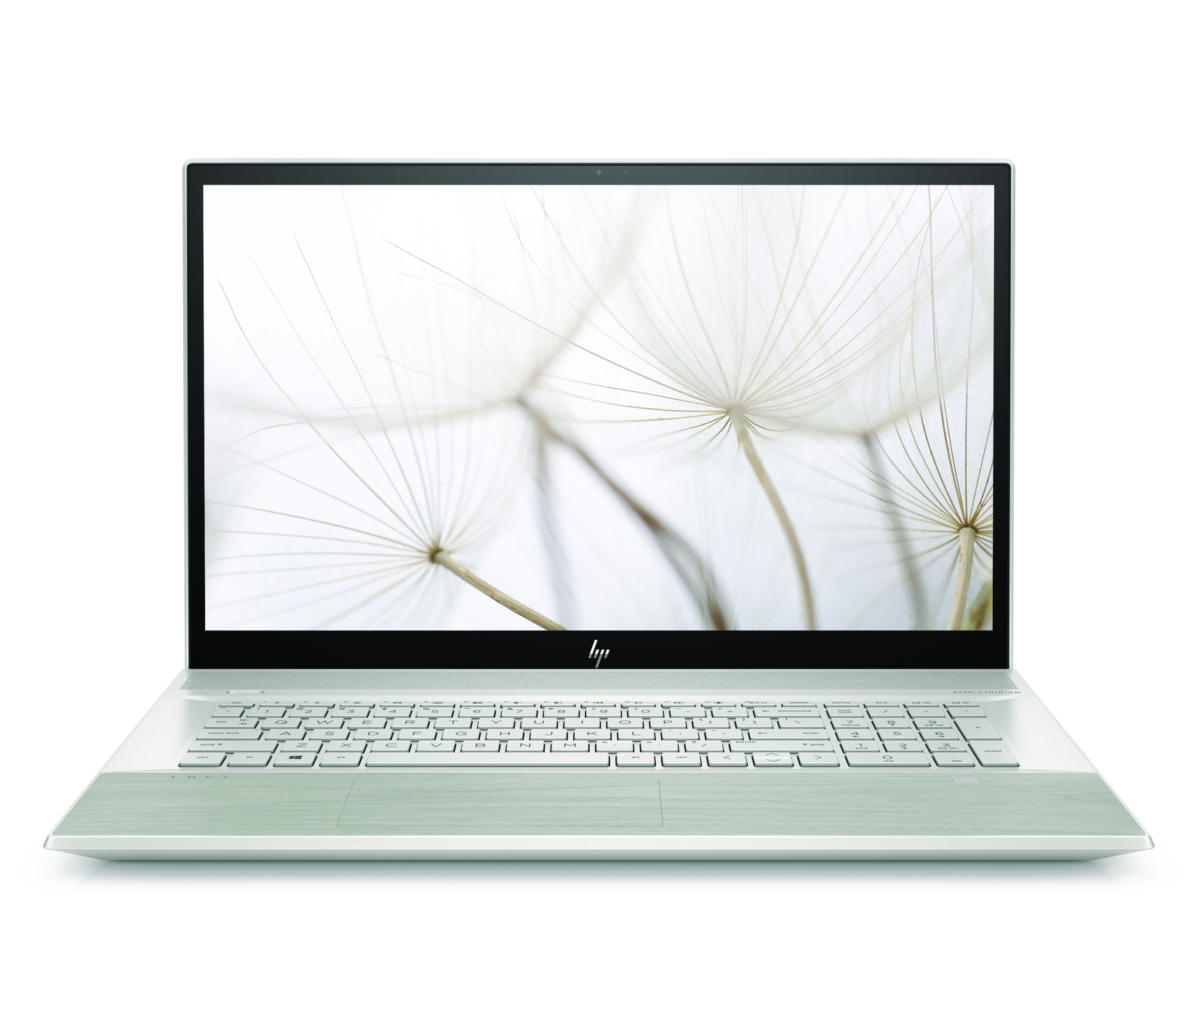 hp envy 17 in natural silver pale birch front